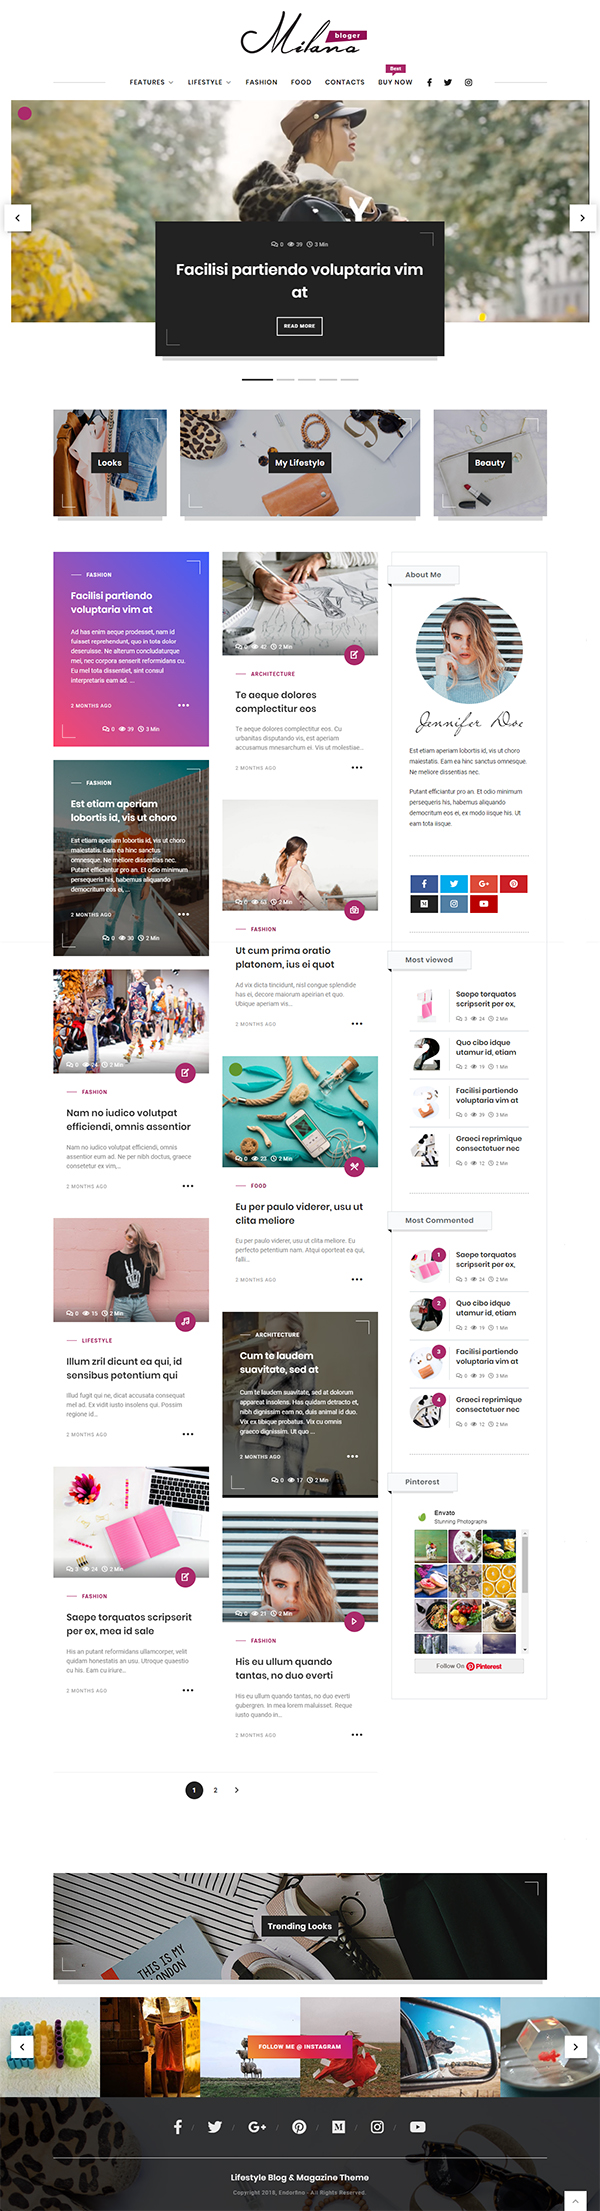 Endorfino - Lifestyle Blog & Magazine WordPress Theme